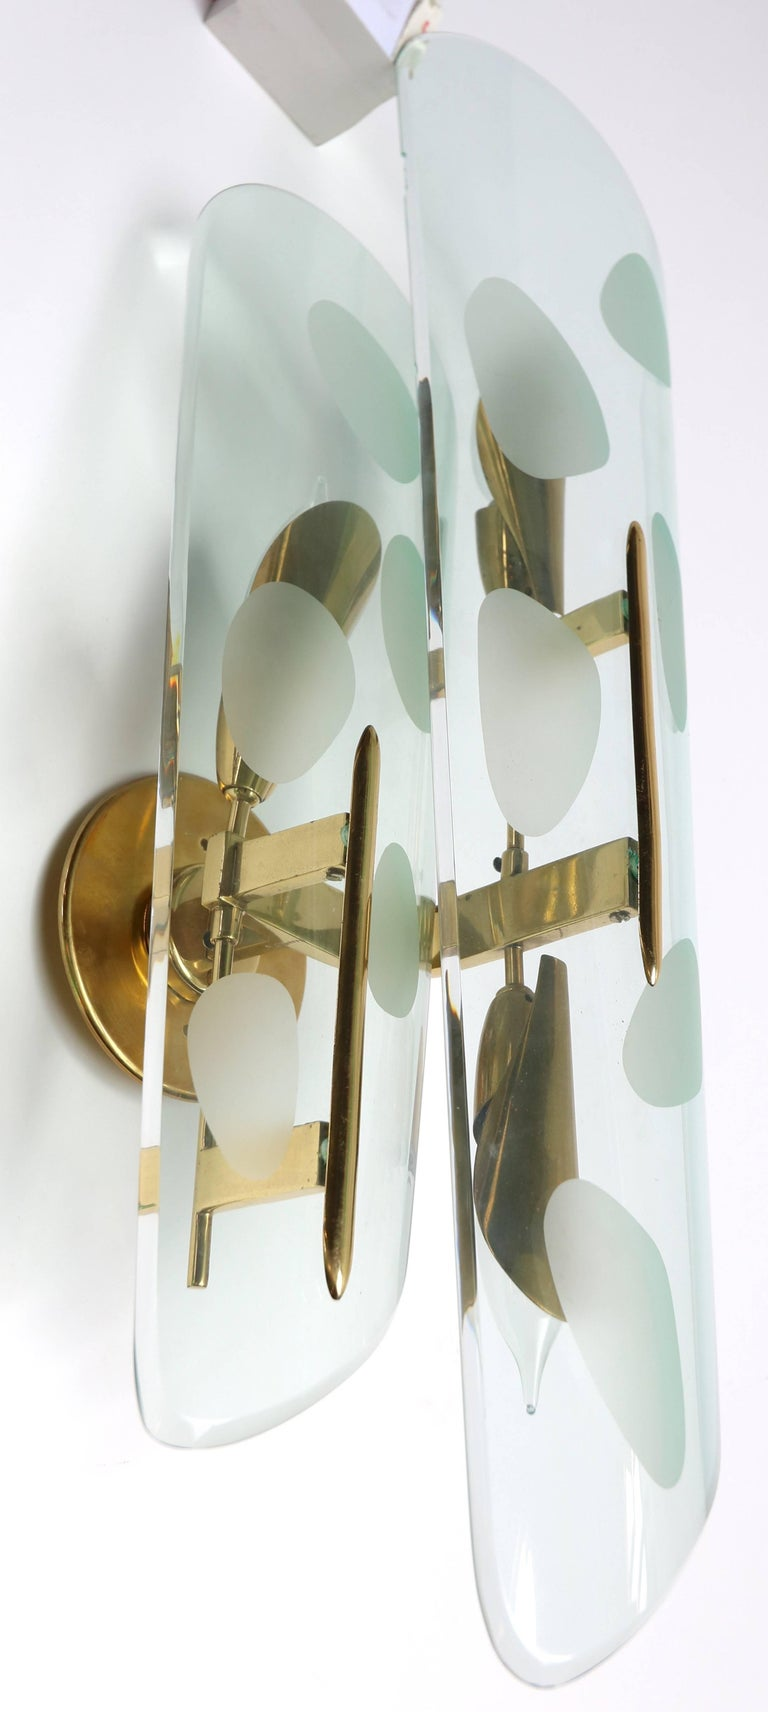 Mid-20th Century Pair of 1950s Italian Sconces with Etched Glass and Brass Frames For Sale